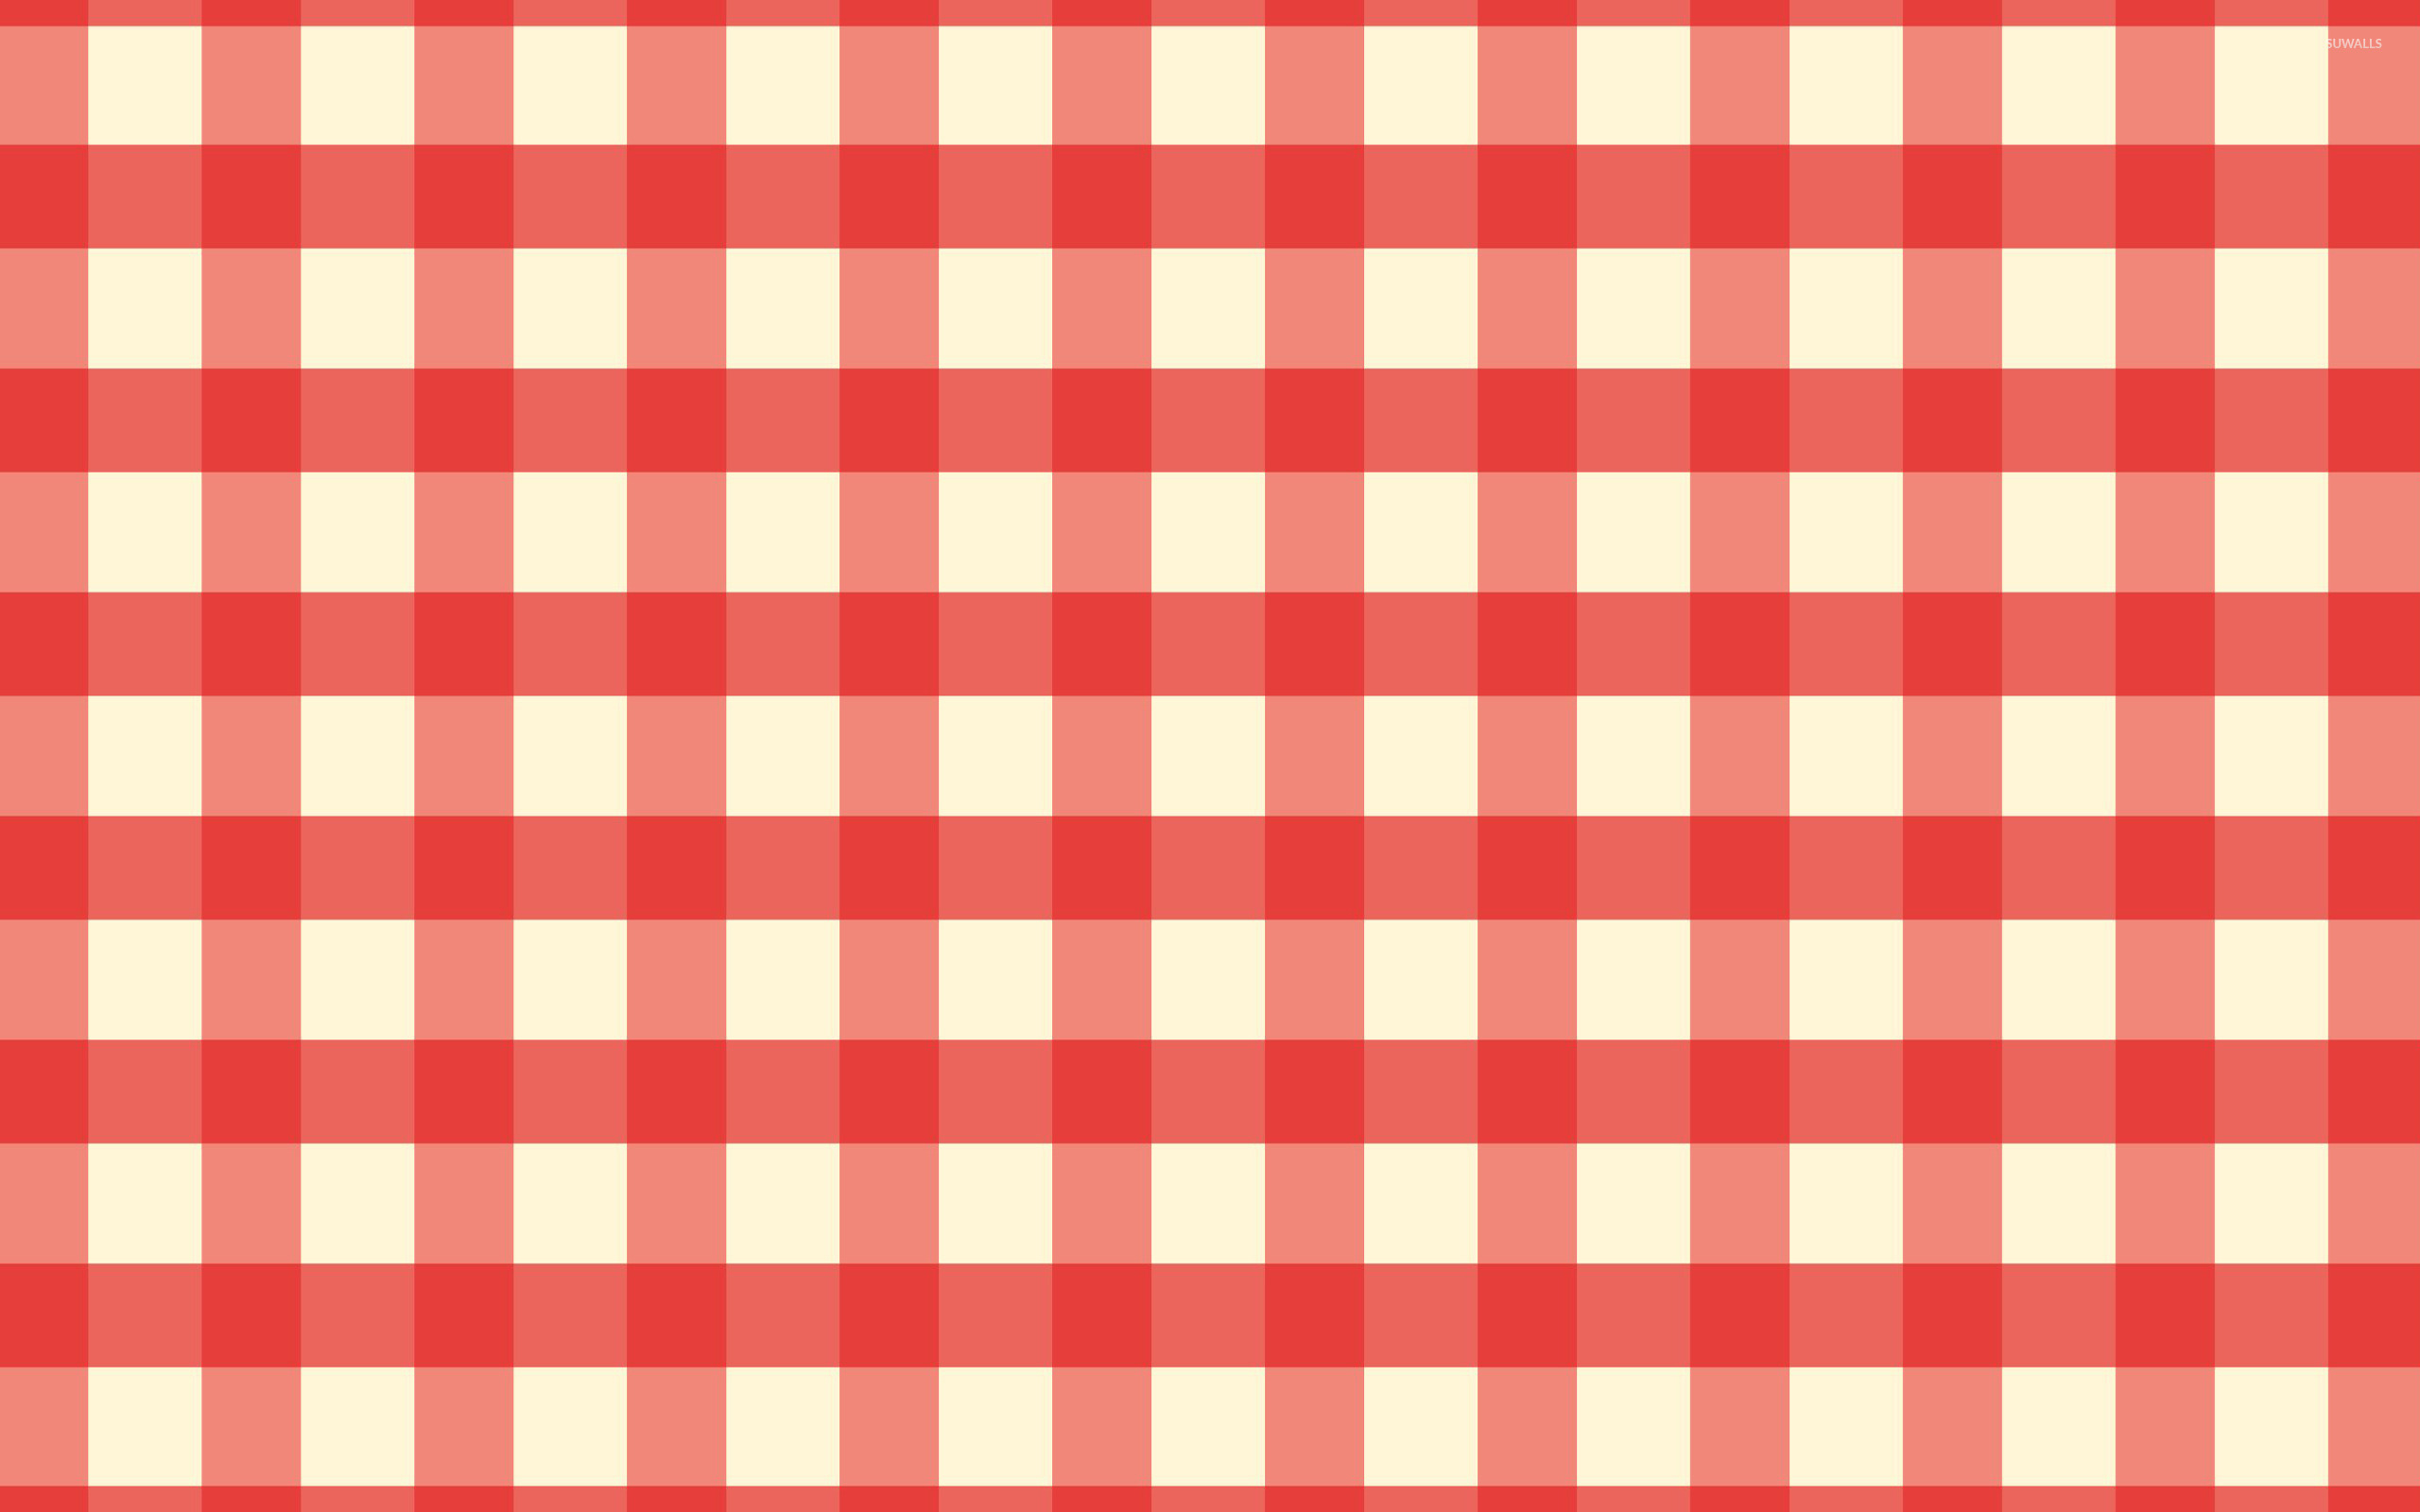 Red And White Tablecloth Wallpaper Abstract Wallpapers 47553